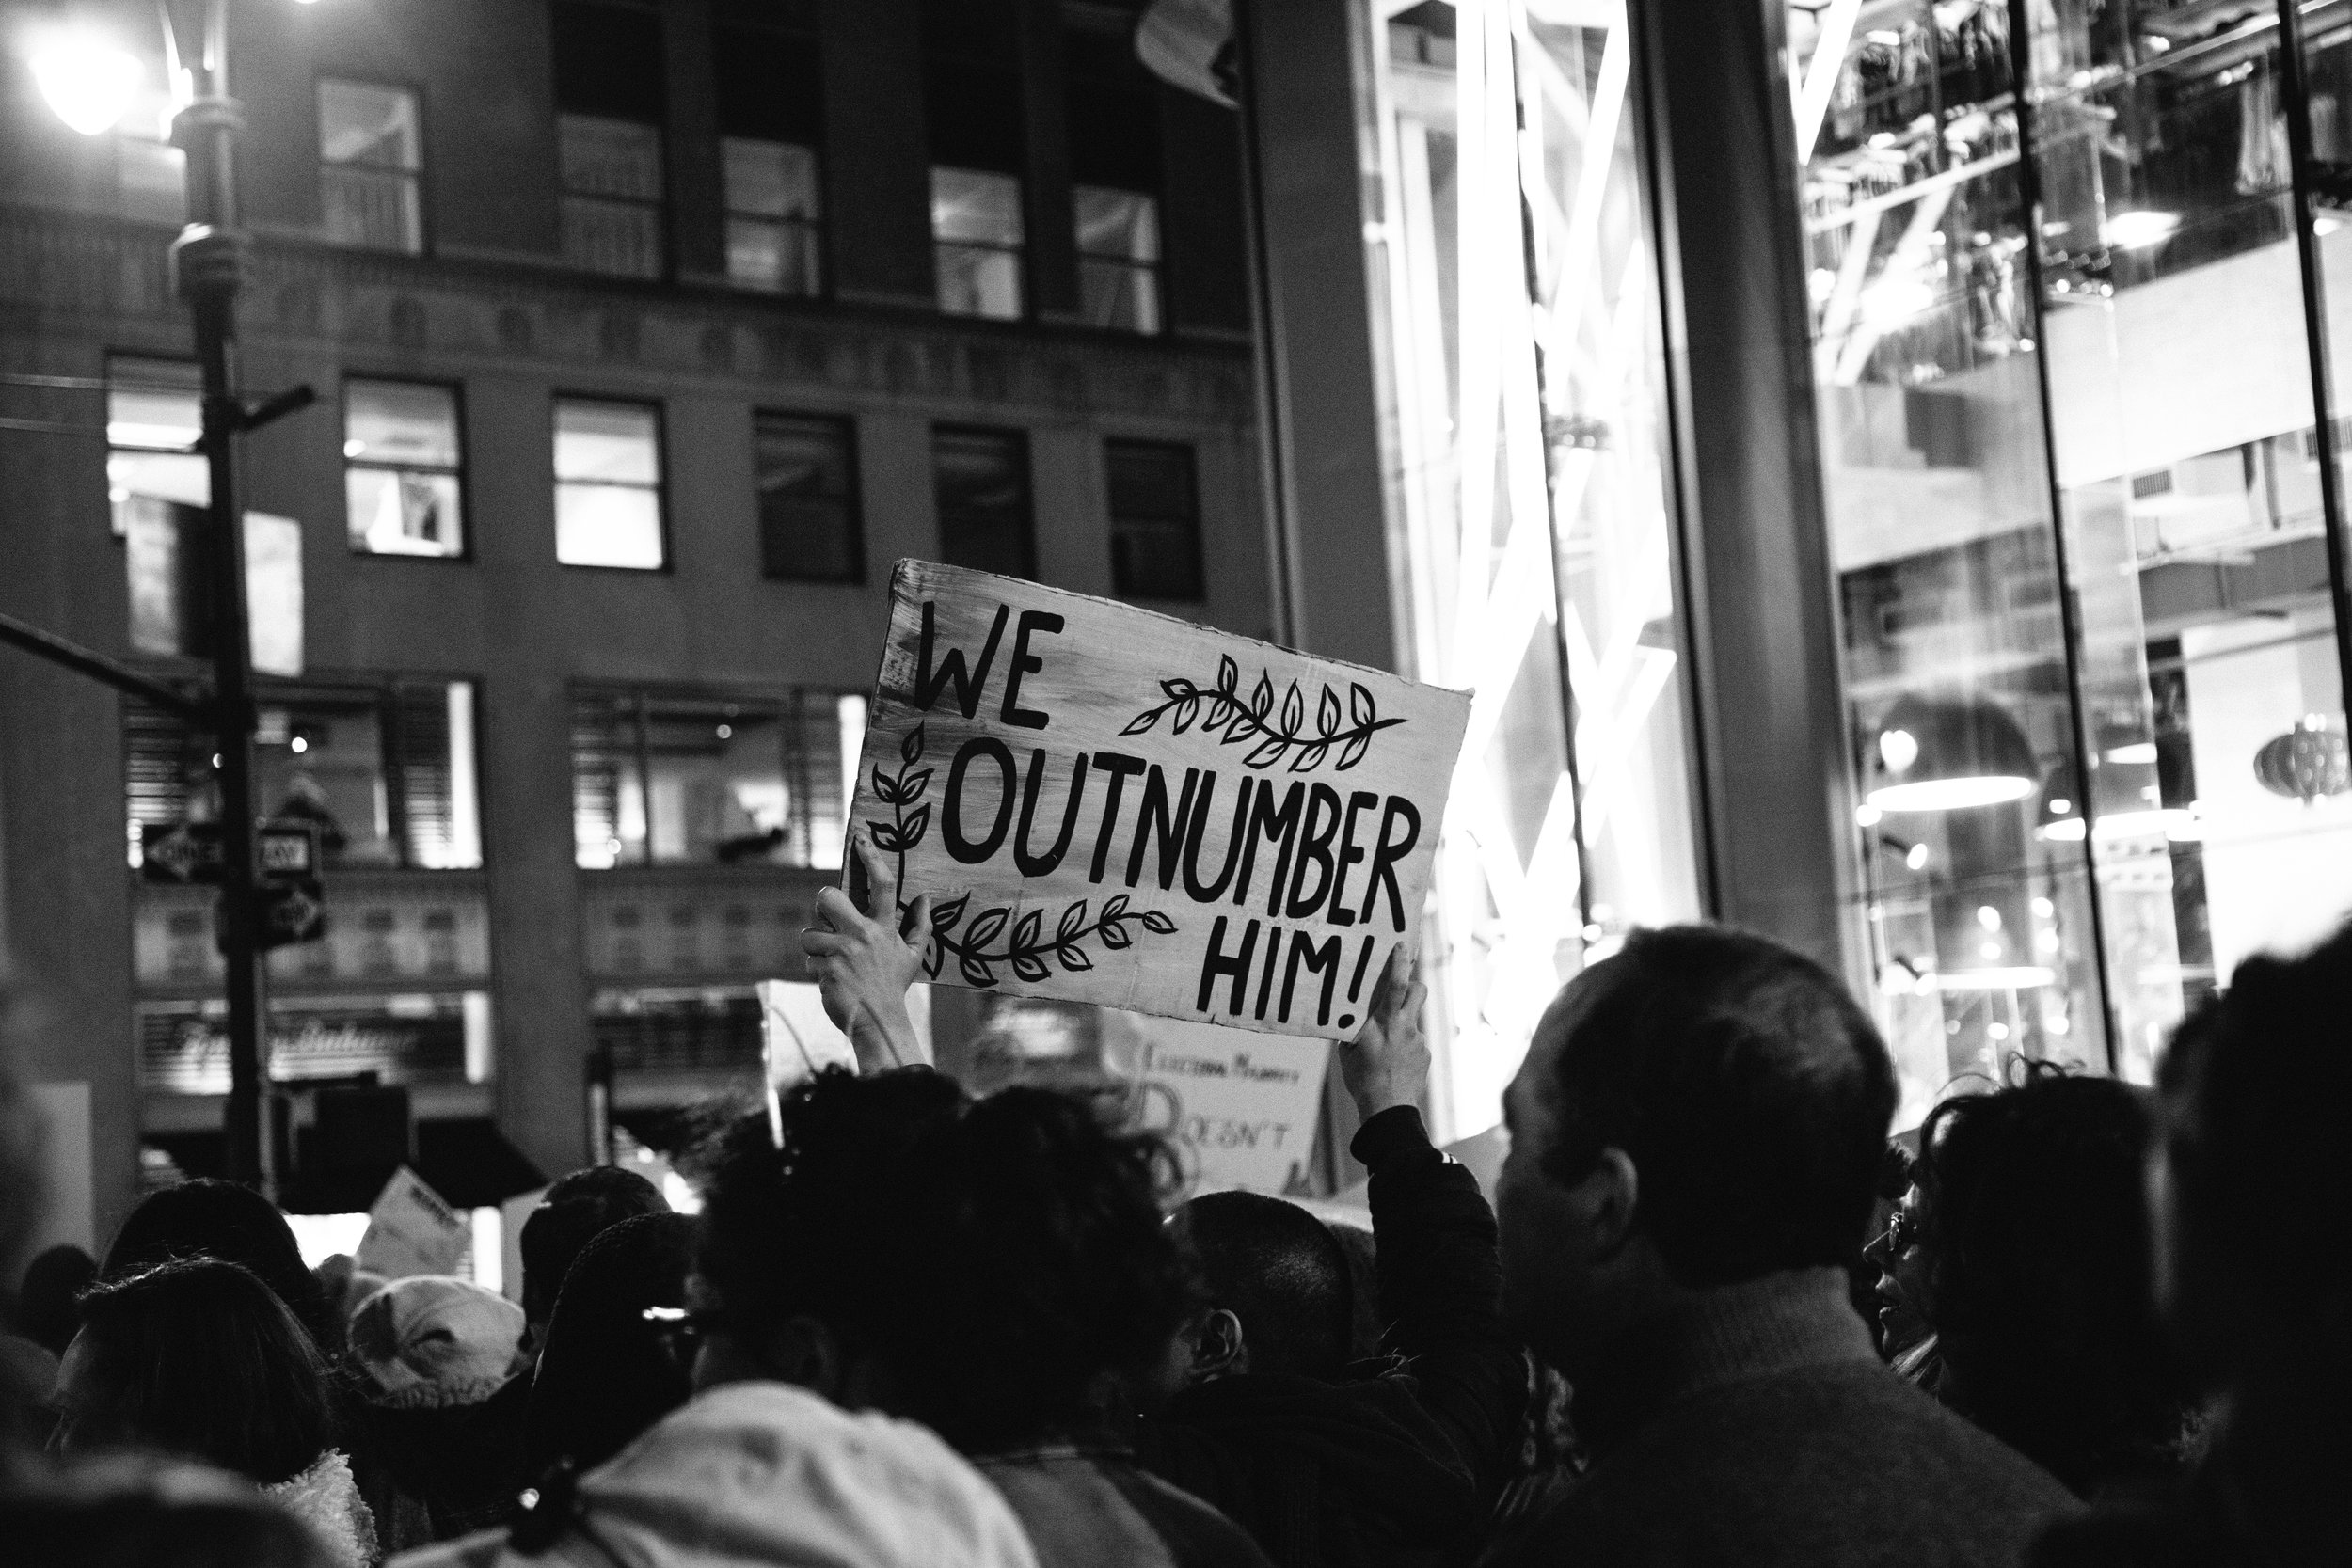 women's march on washington nyc protest signs-176.jpg